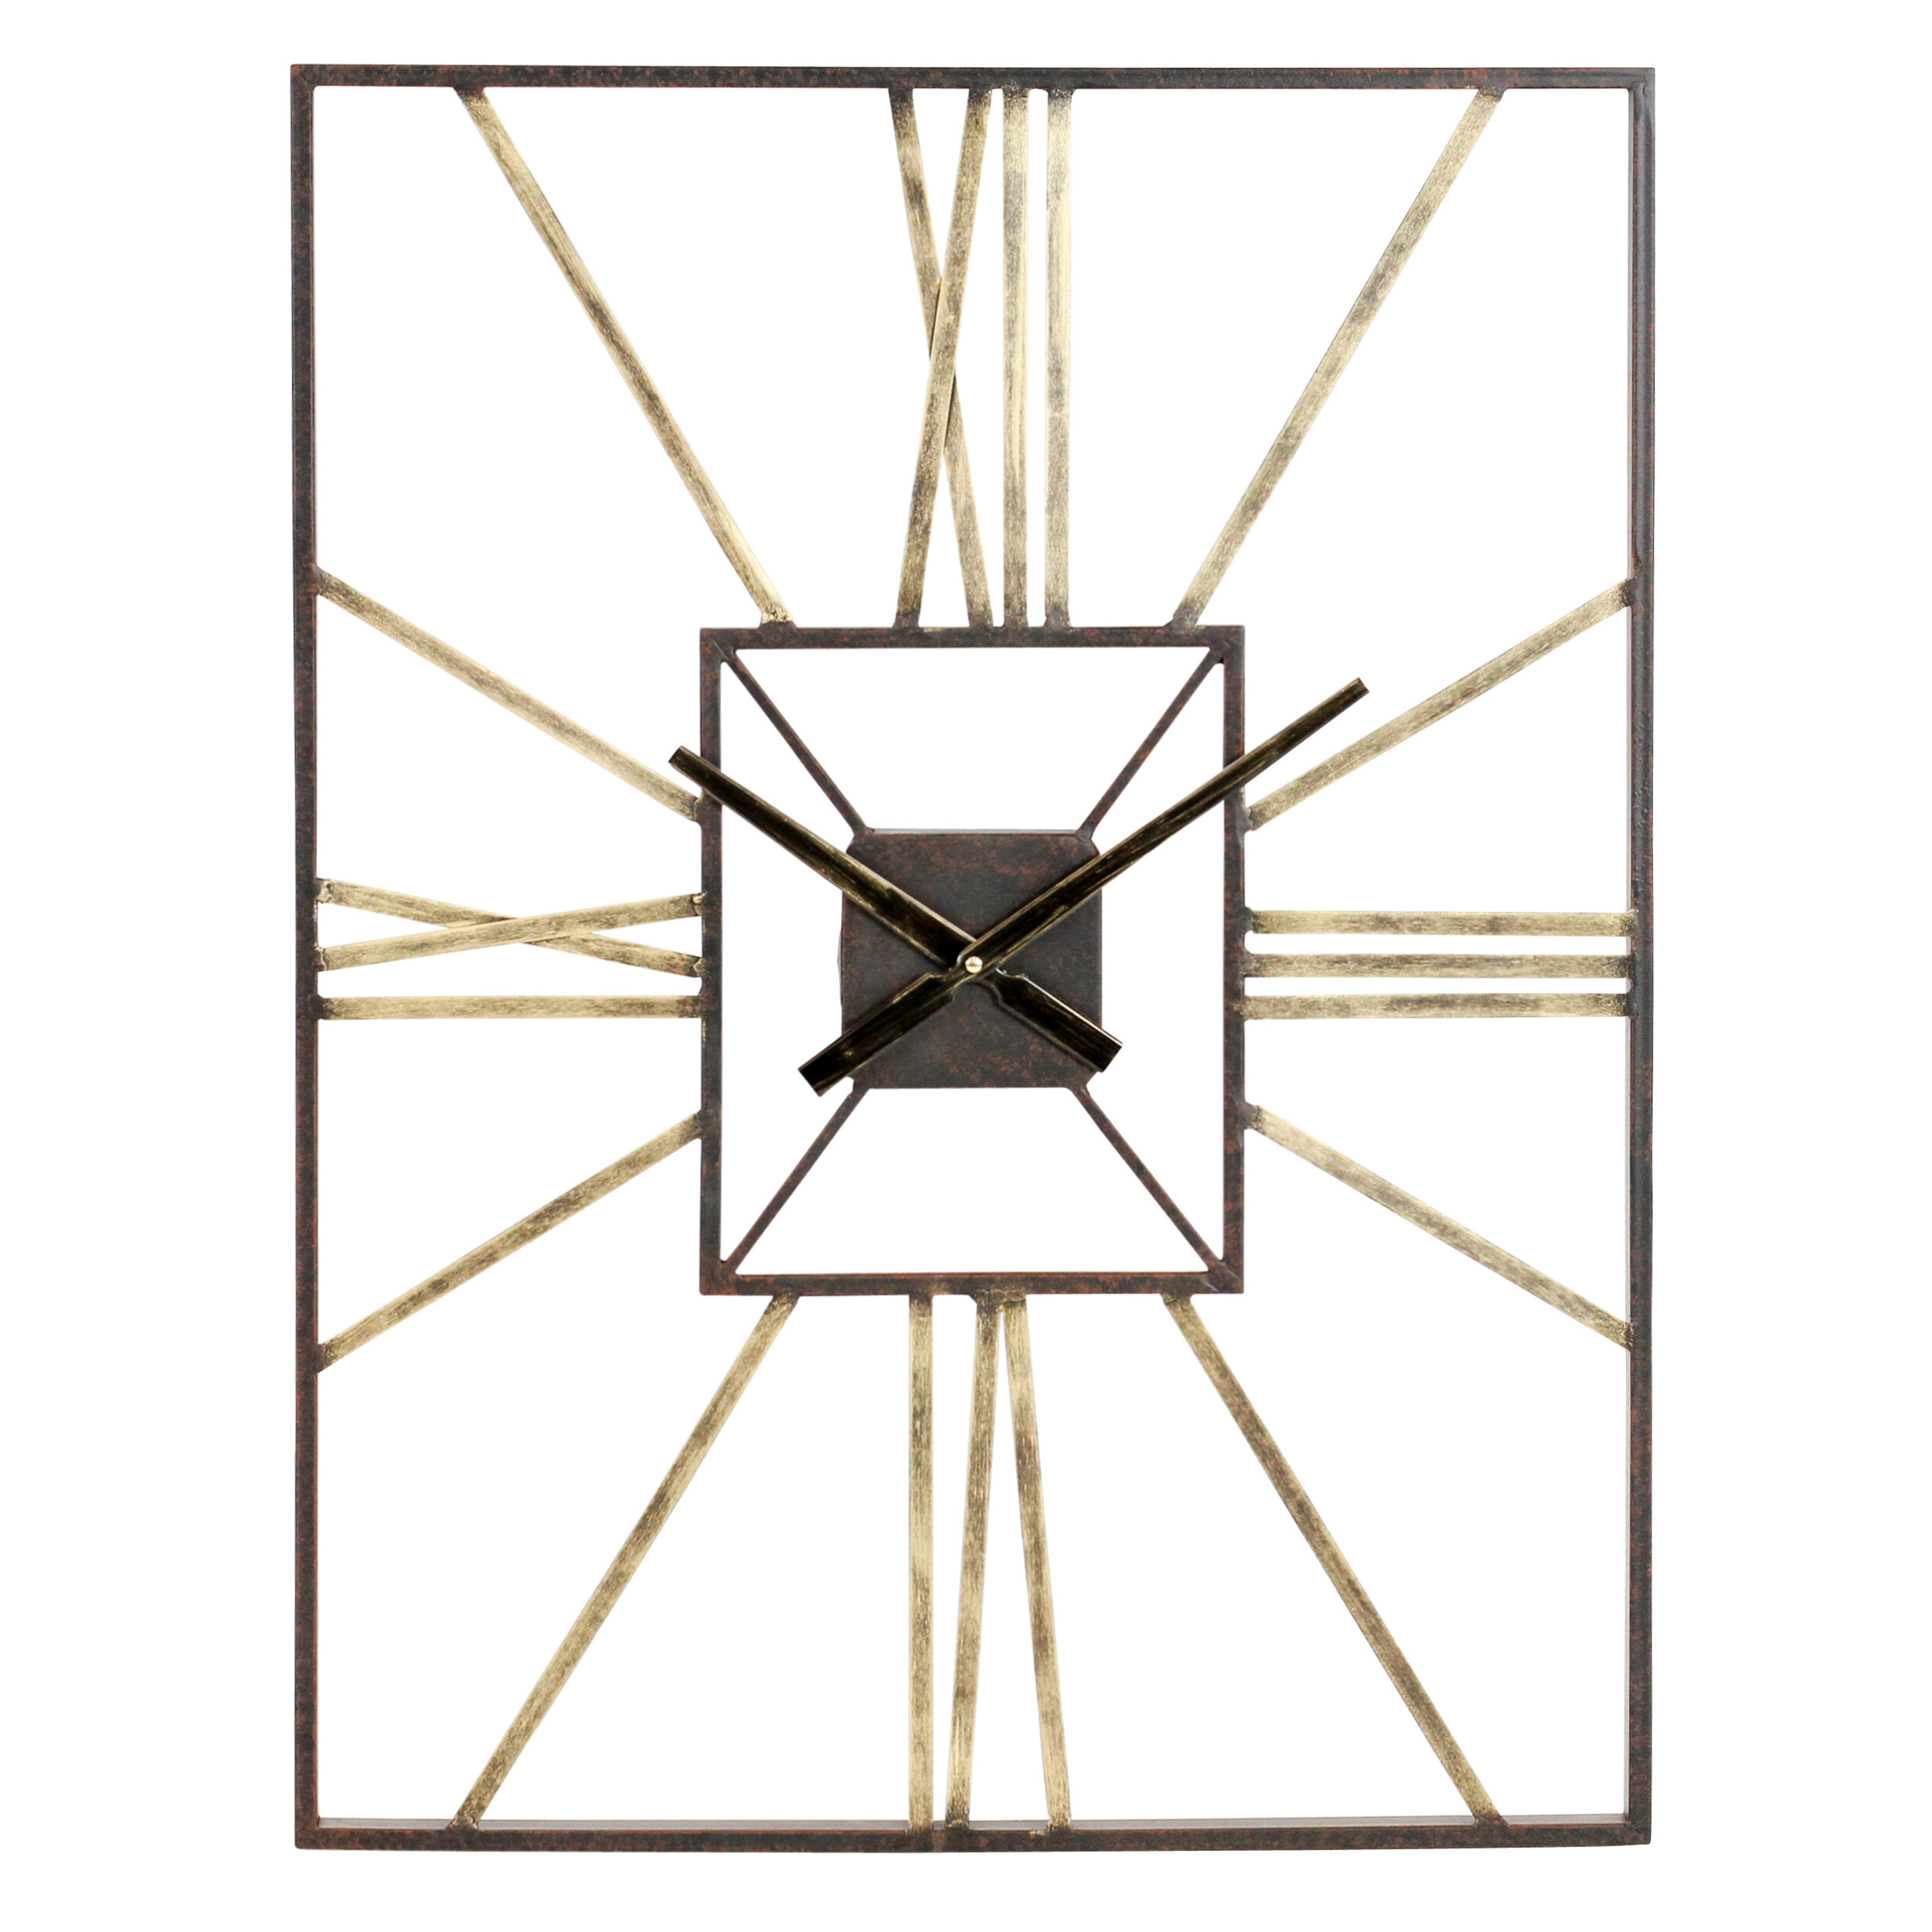 Dillwyn mid century wall clock reviews allmodern